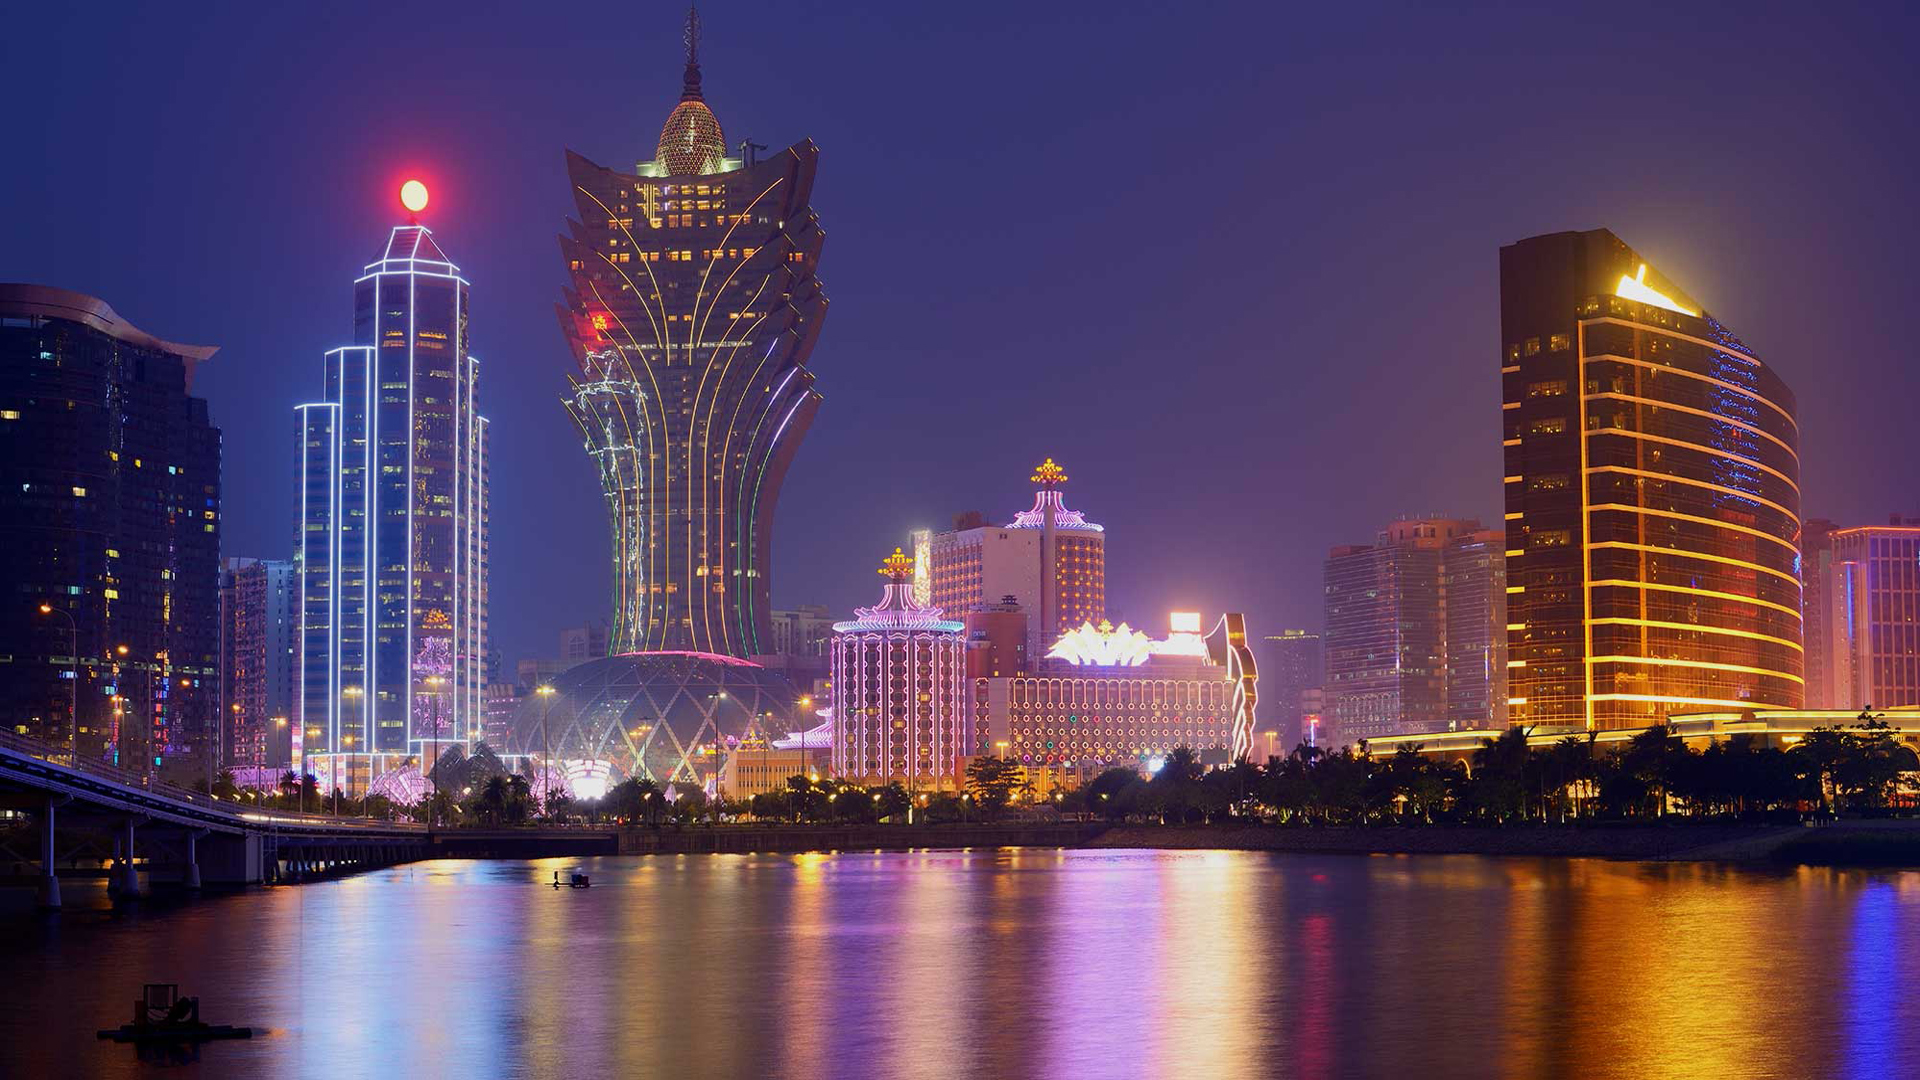 Grand Lisboa Hotel And Casino Ultramodern Tower With Impressive 1920x1080